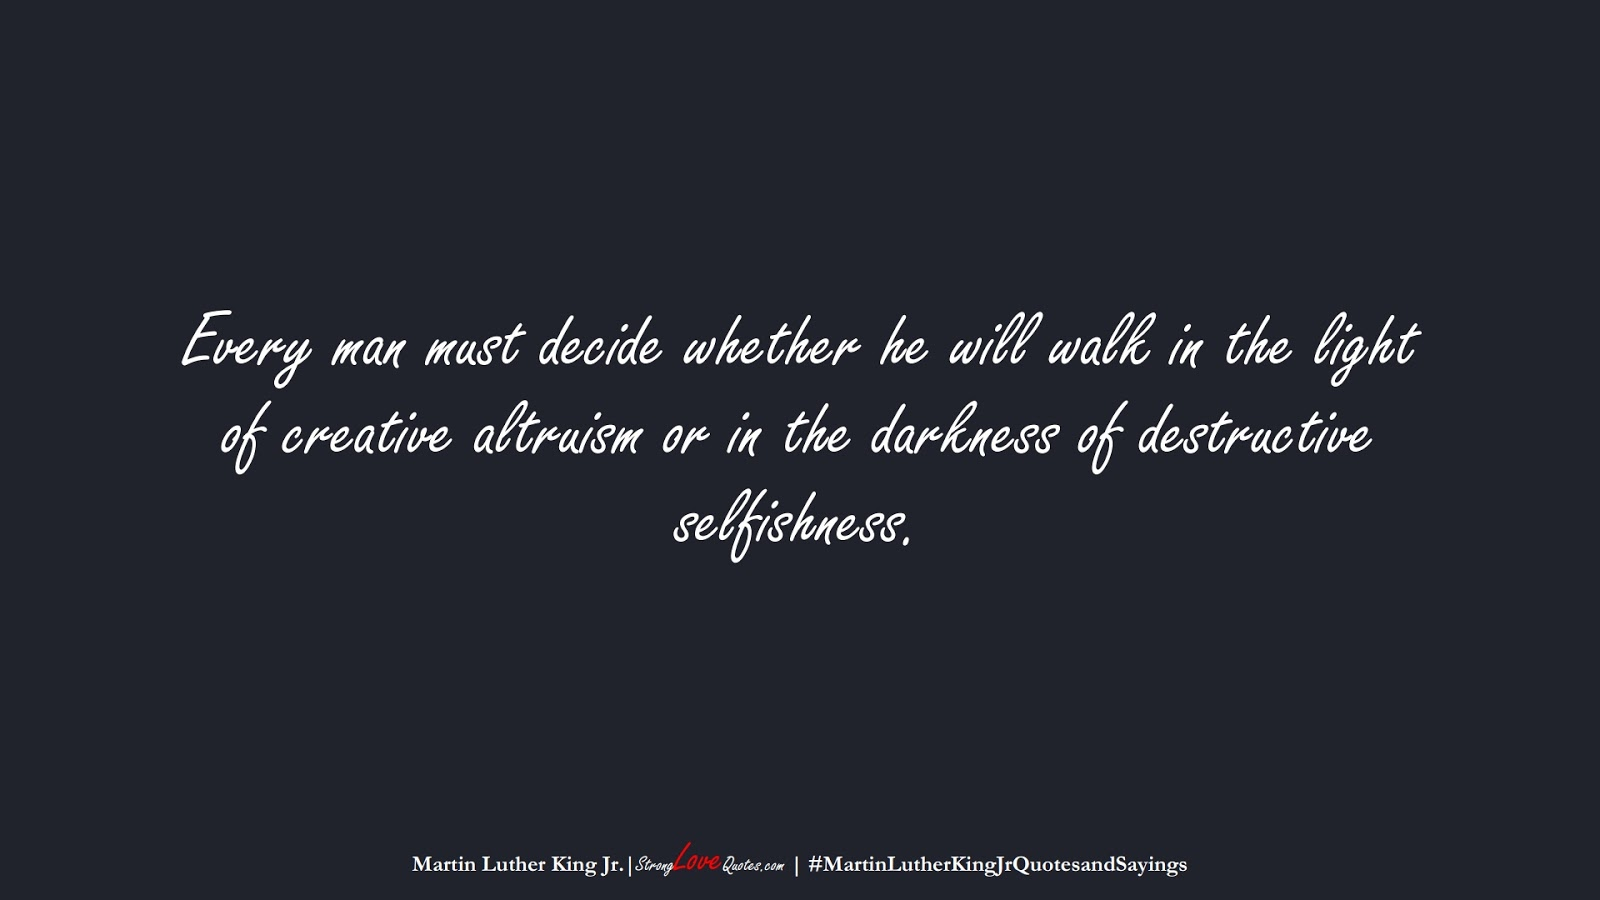 Every man must decide whether he will walk in the light of creative altruism or in the darkness of destructive selfishness. (Martin Luther King Jr.);  #MartinLutherKingJrQuotesandSayings